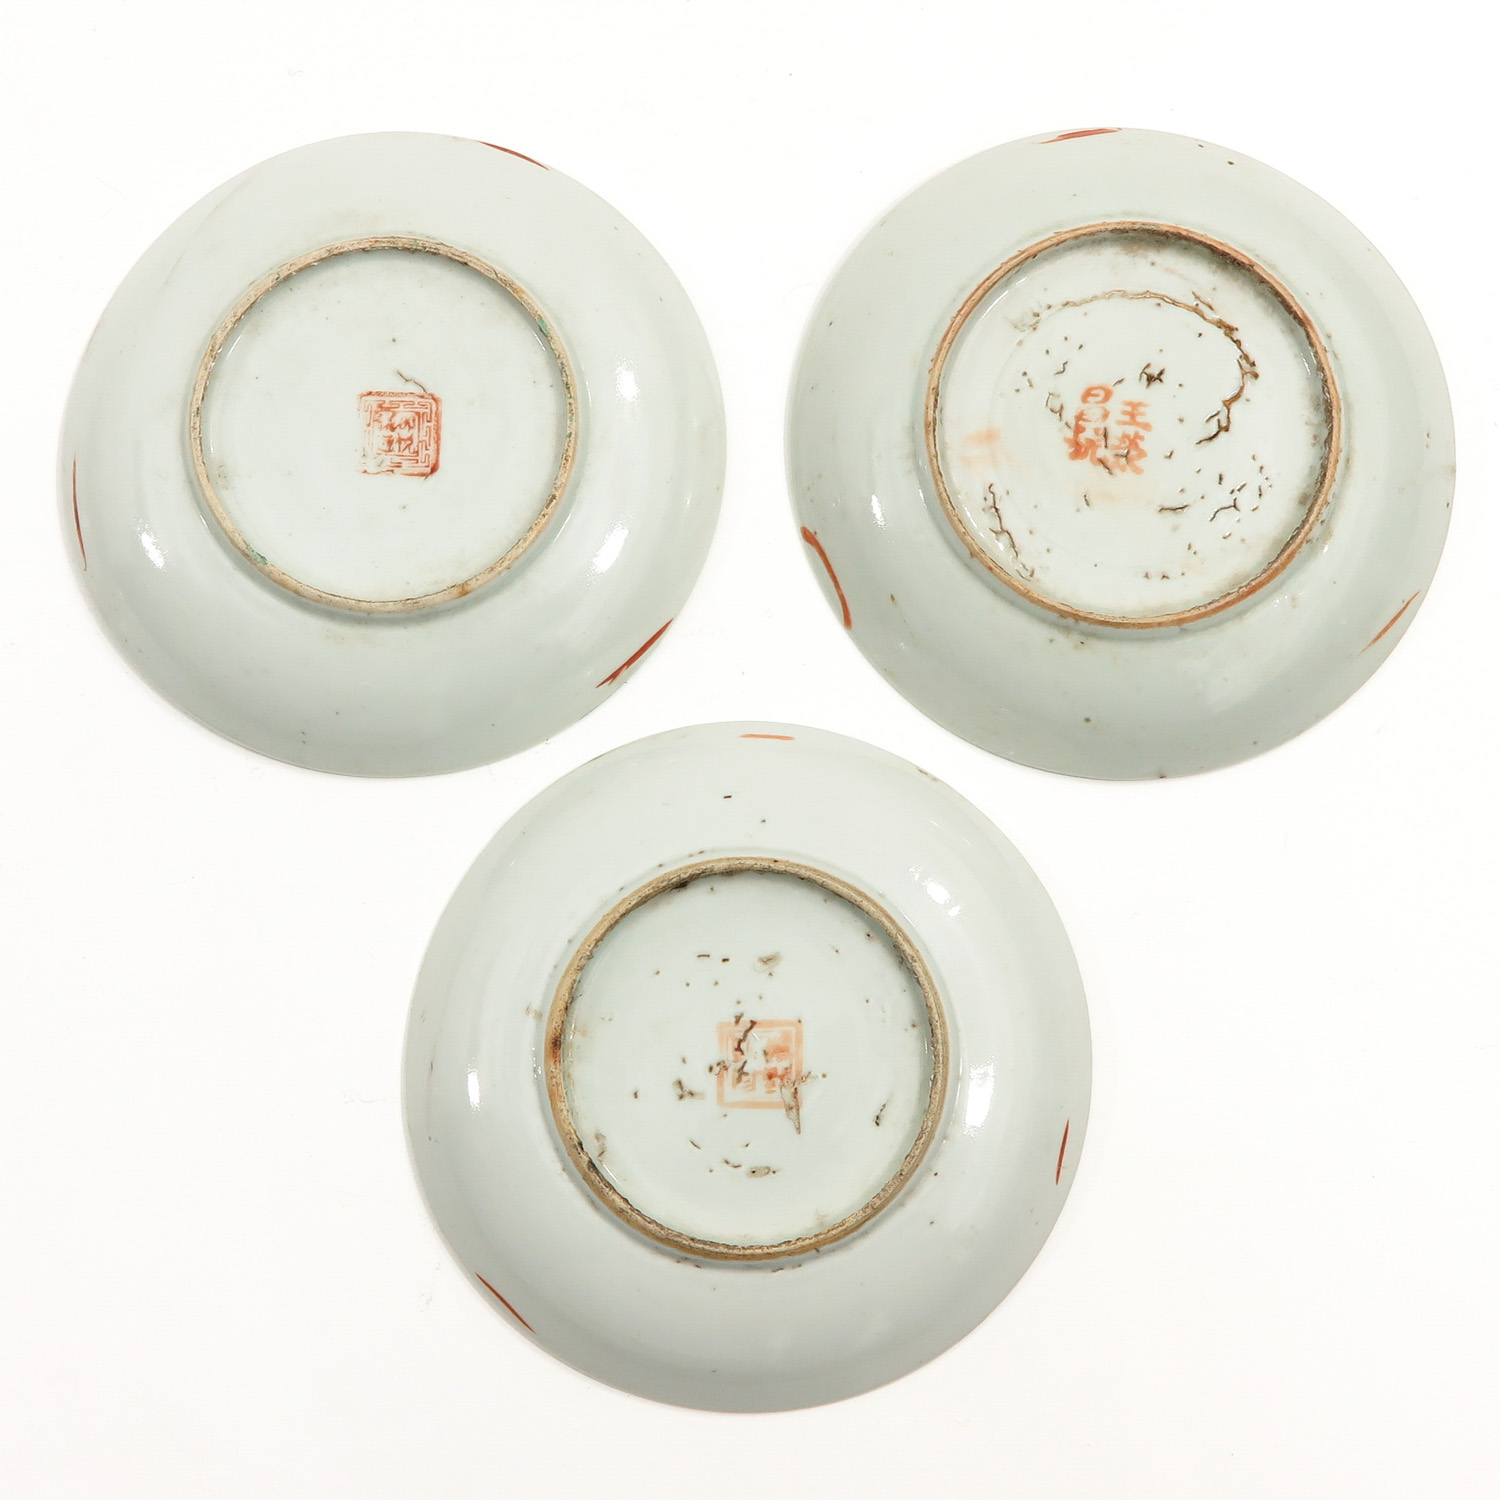 A Collection of 10 Polychrome Decor Plates - Image 8 of 10